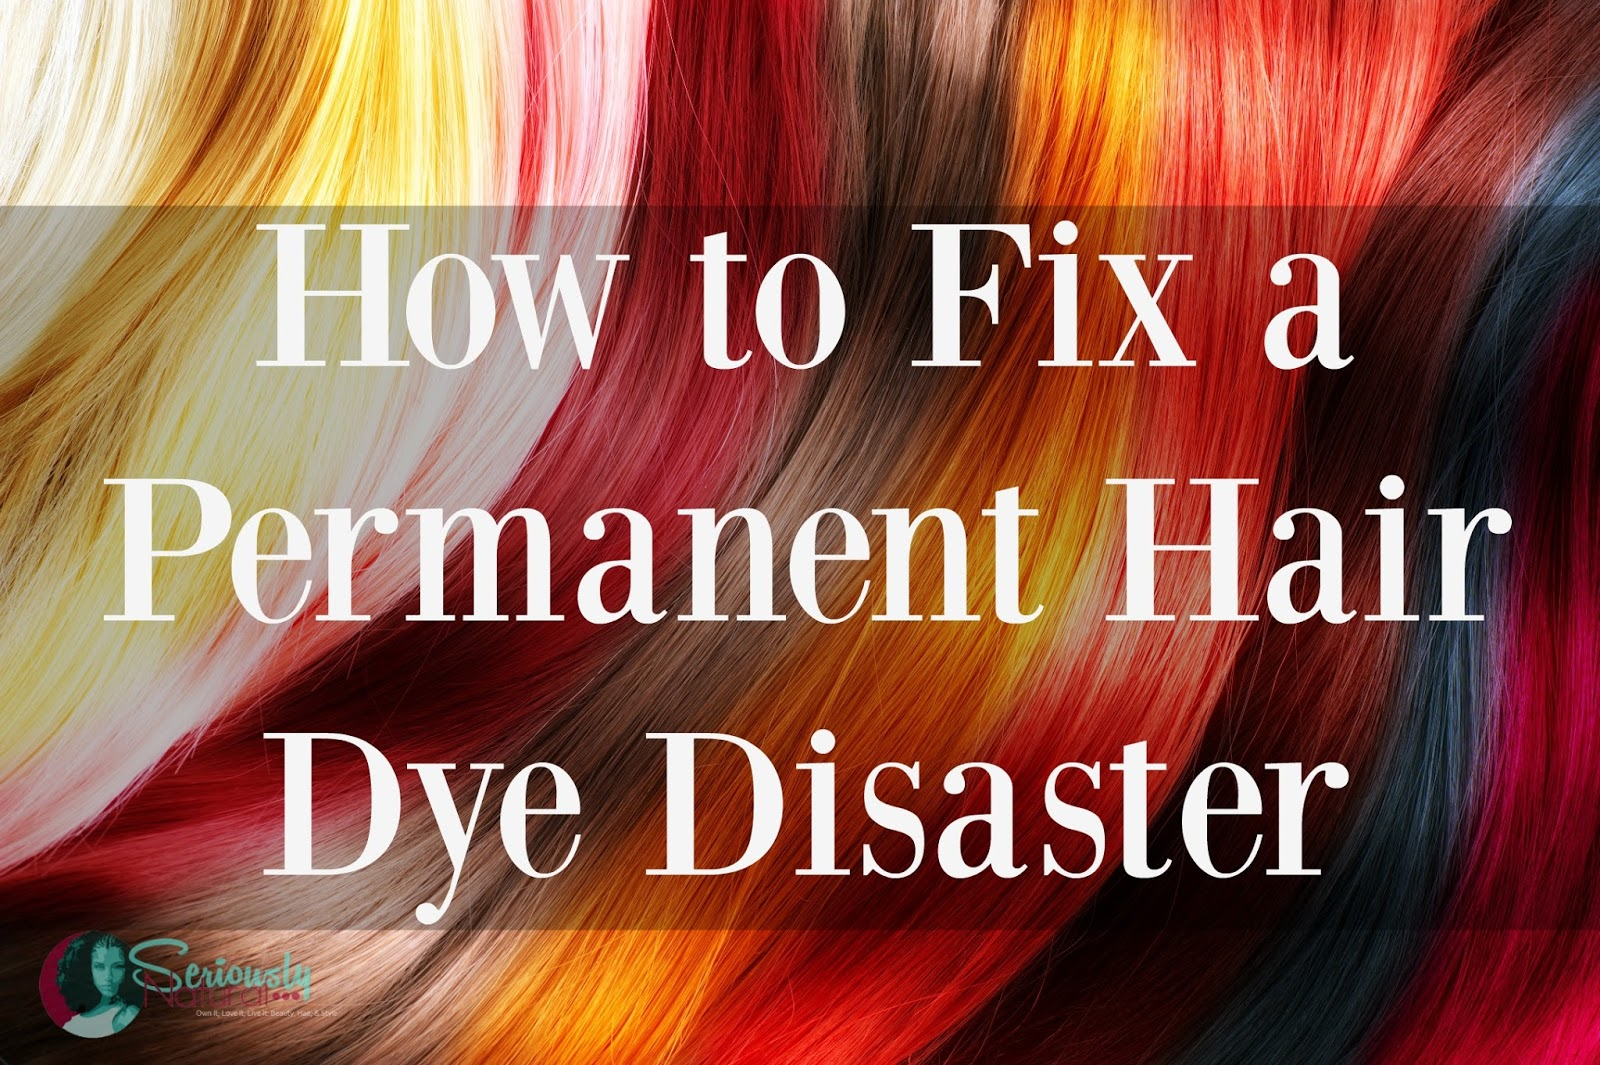 How to Fix a Permanent Hair Dye Disaster